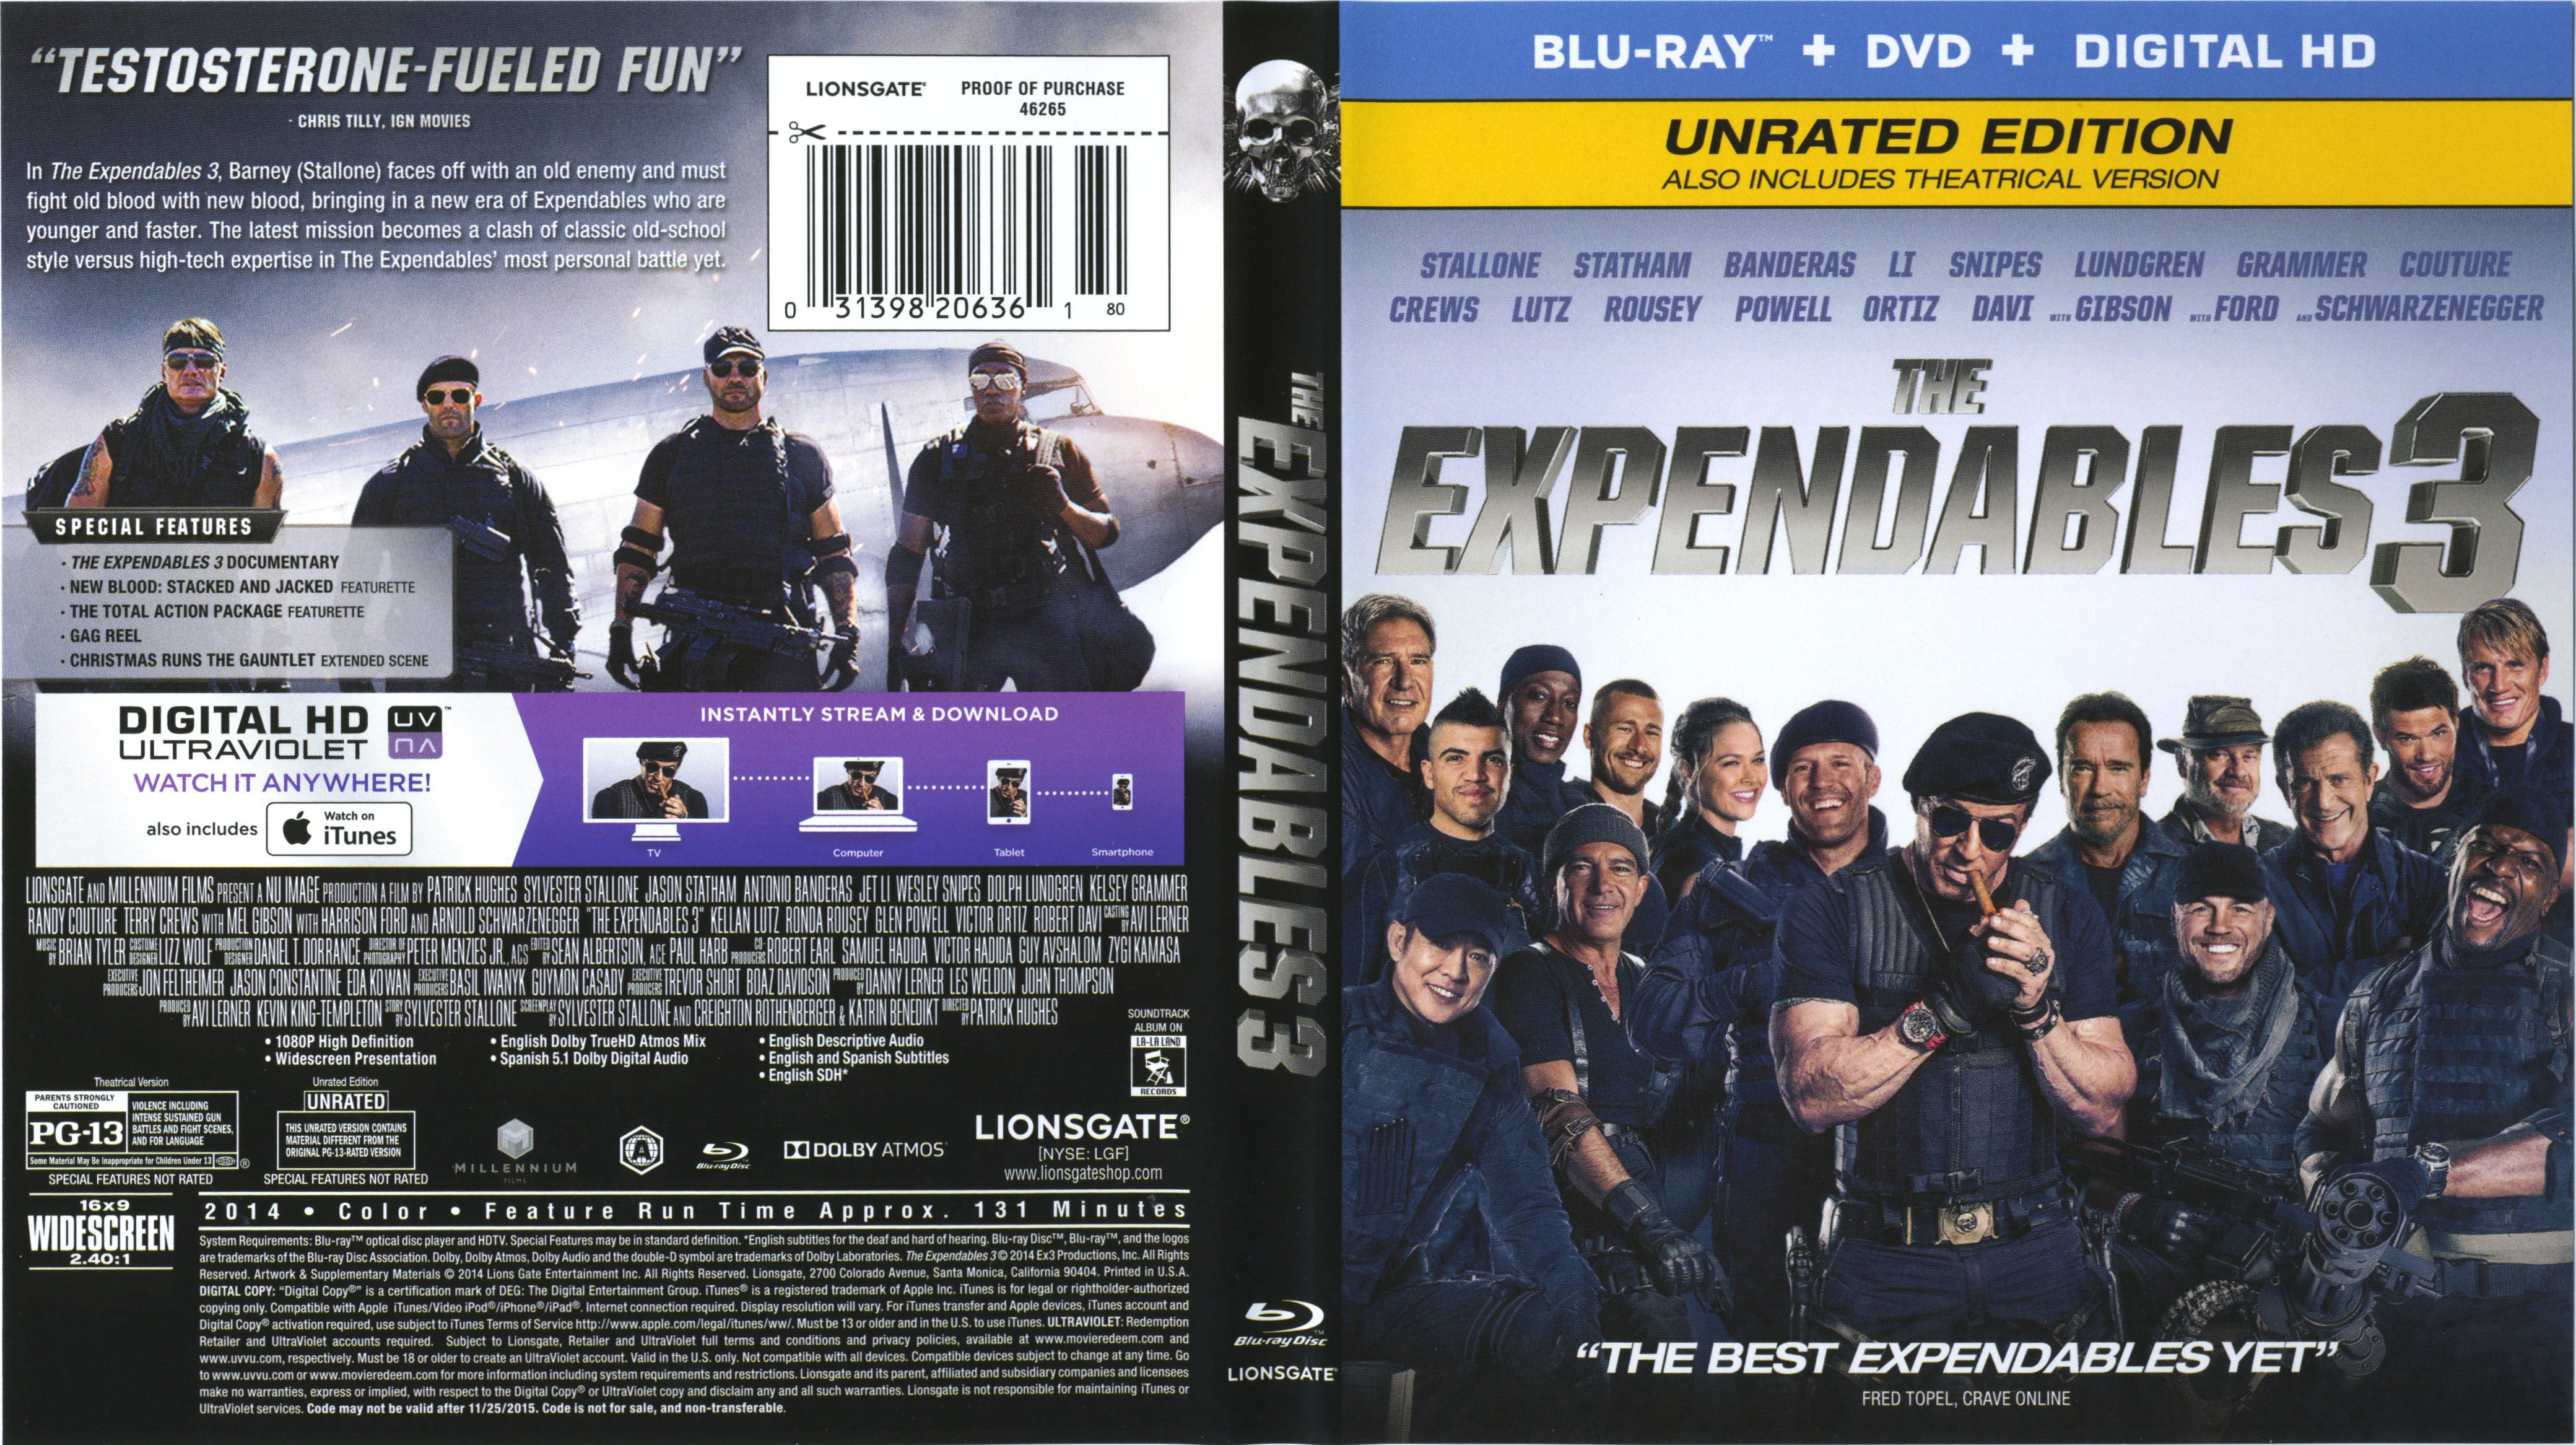 The Expendables 3 Blu-Ray Cover & Labels | Dvd Covers and ...